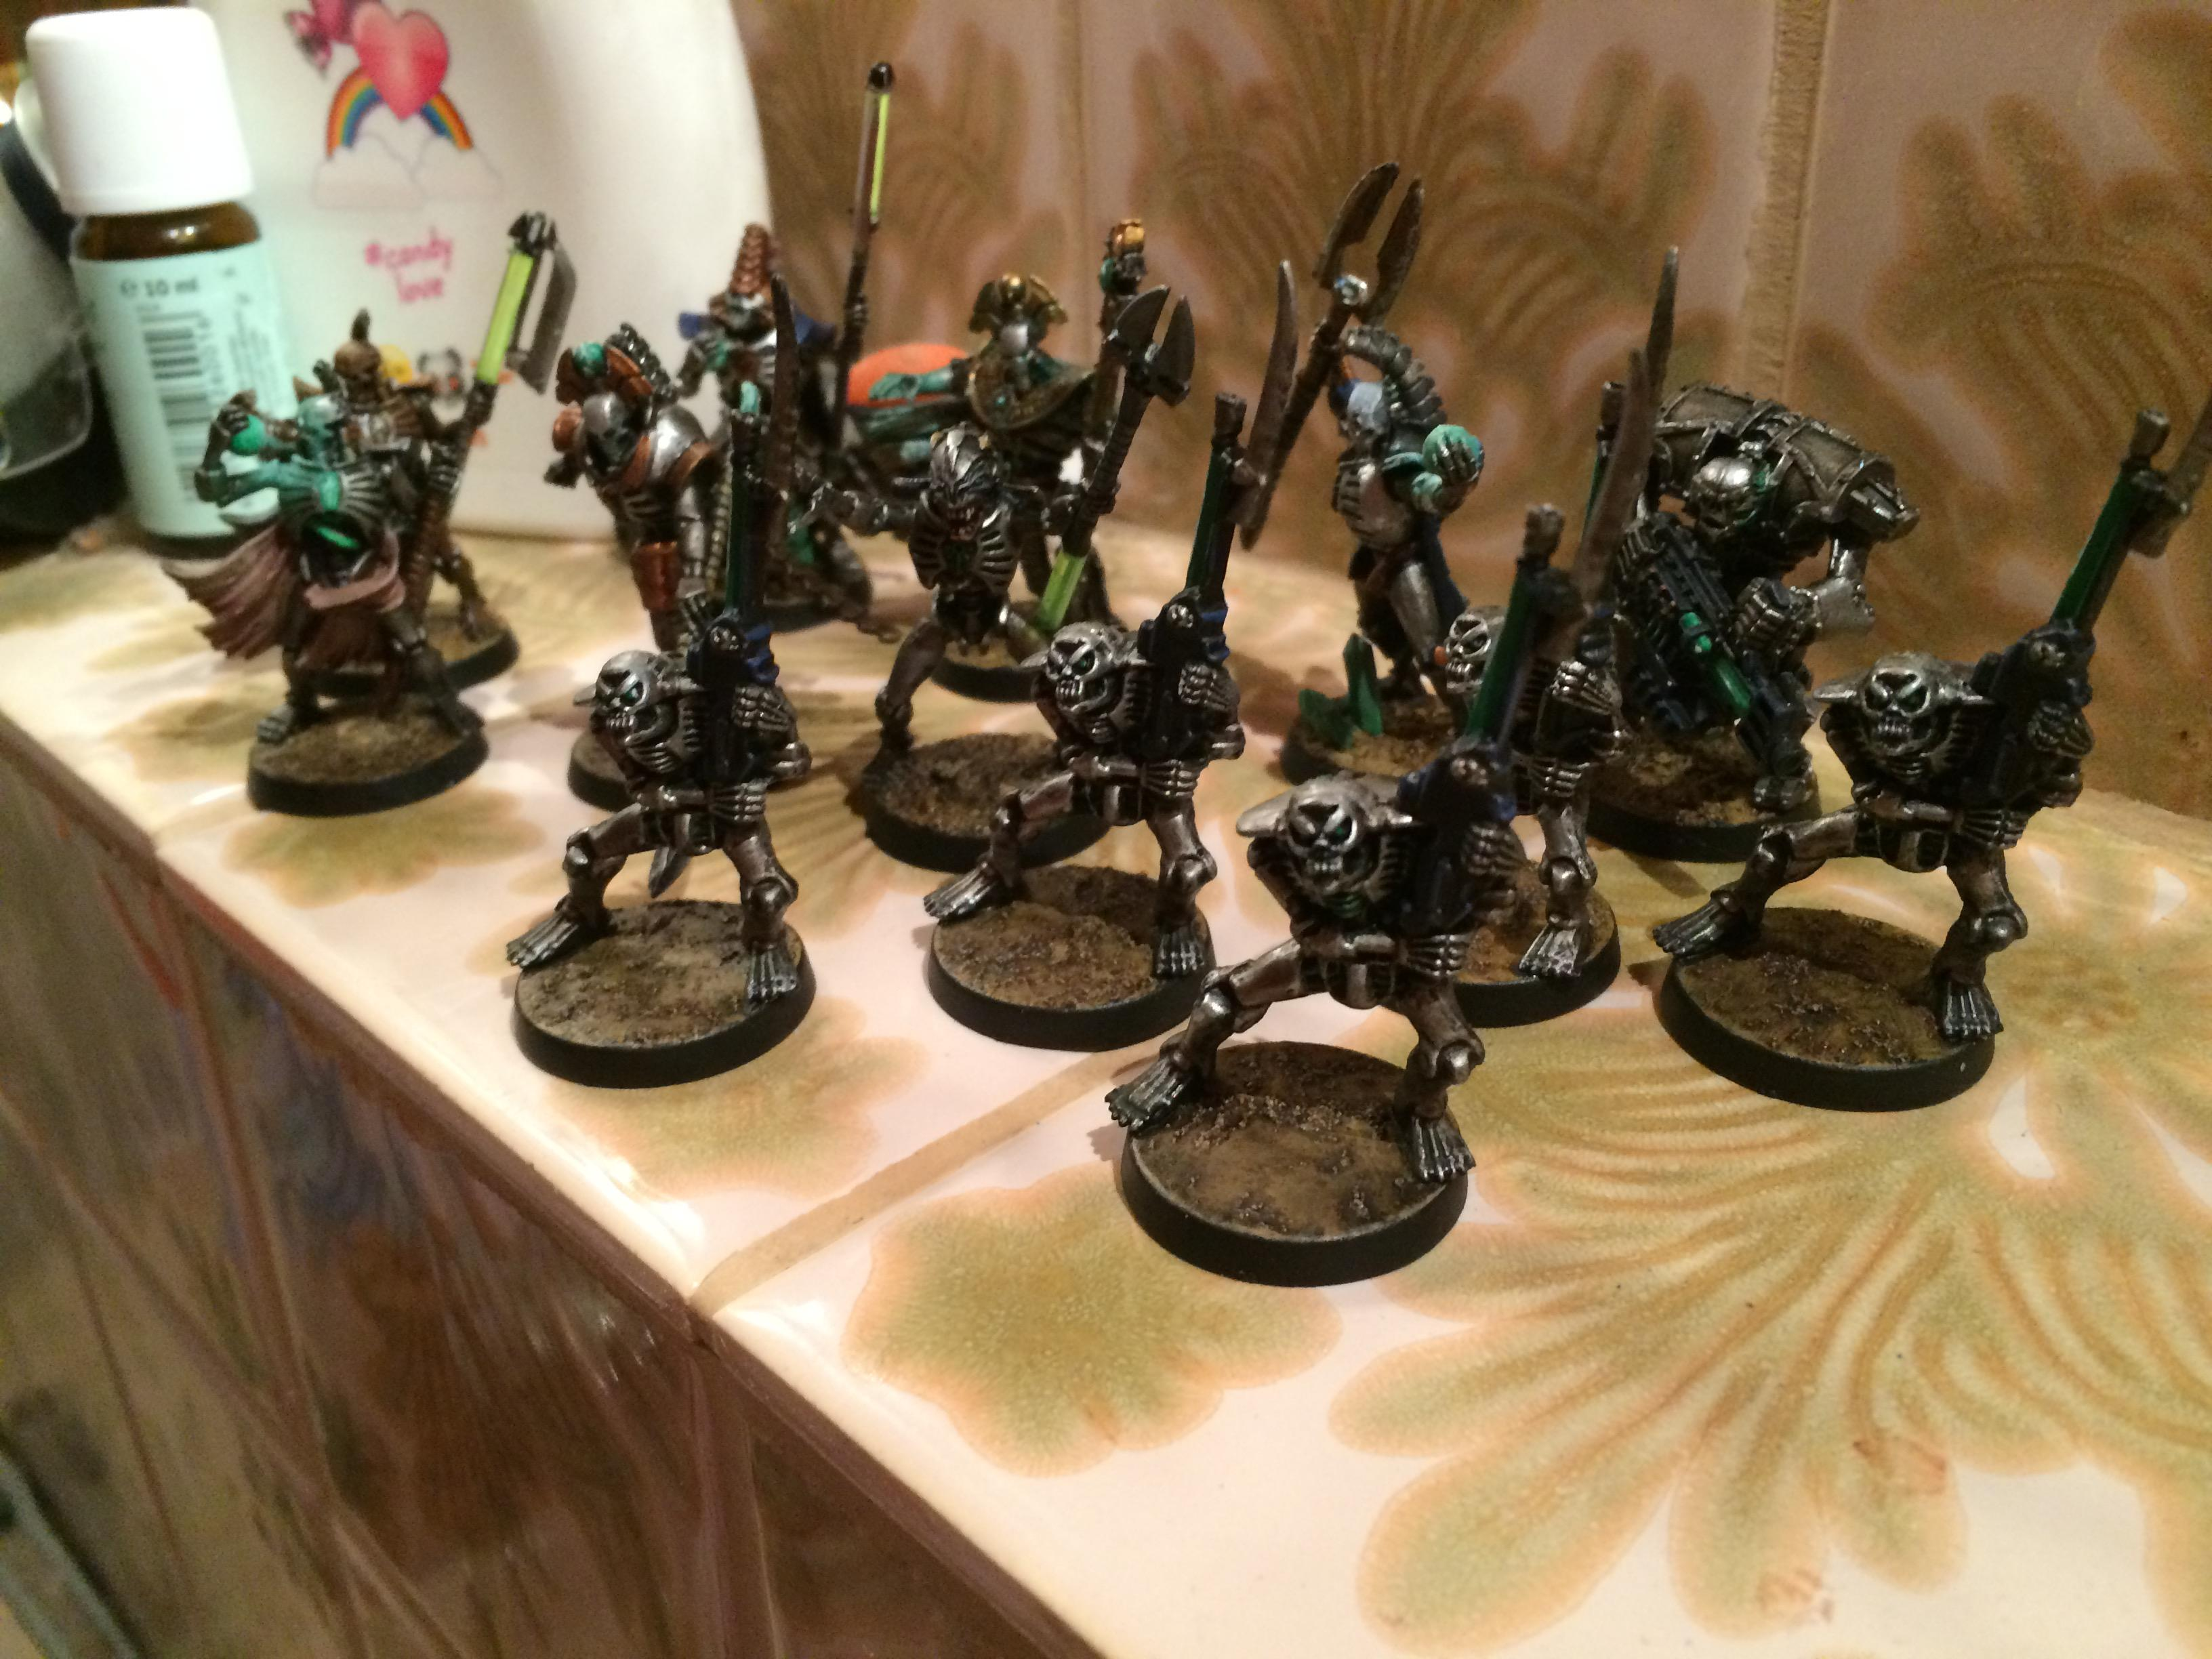 Conversion, Cool, Fast, Little Bit Wip, Lord, Metal, Necrons, Old, Oldhammer, Painting, Quest, Rogue, School, Simple, Star, Starquest, Style, Trader